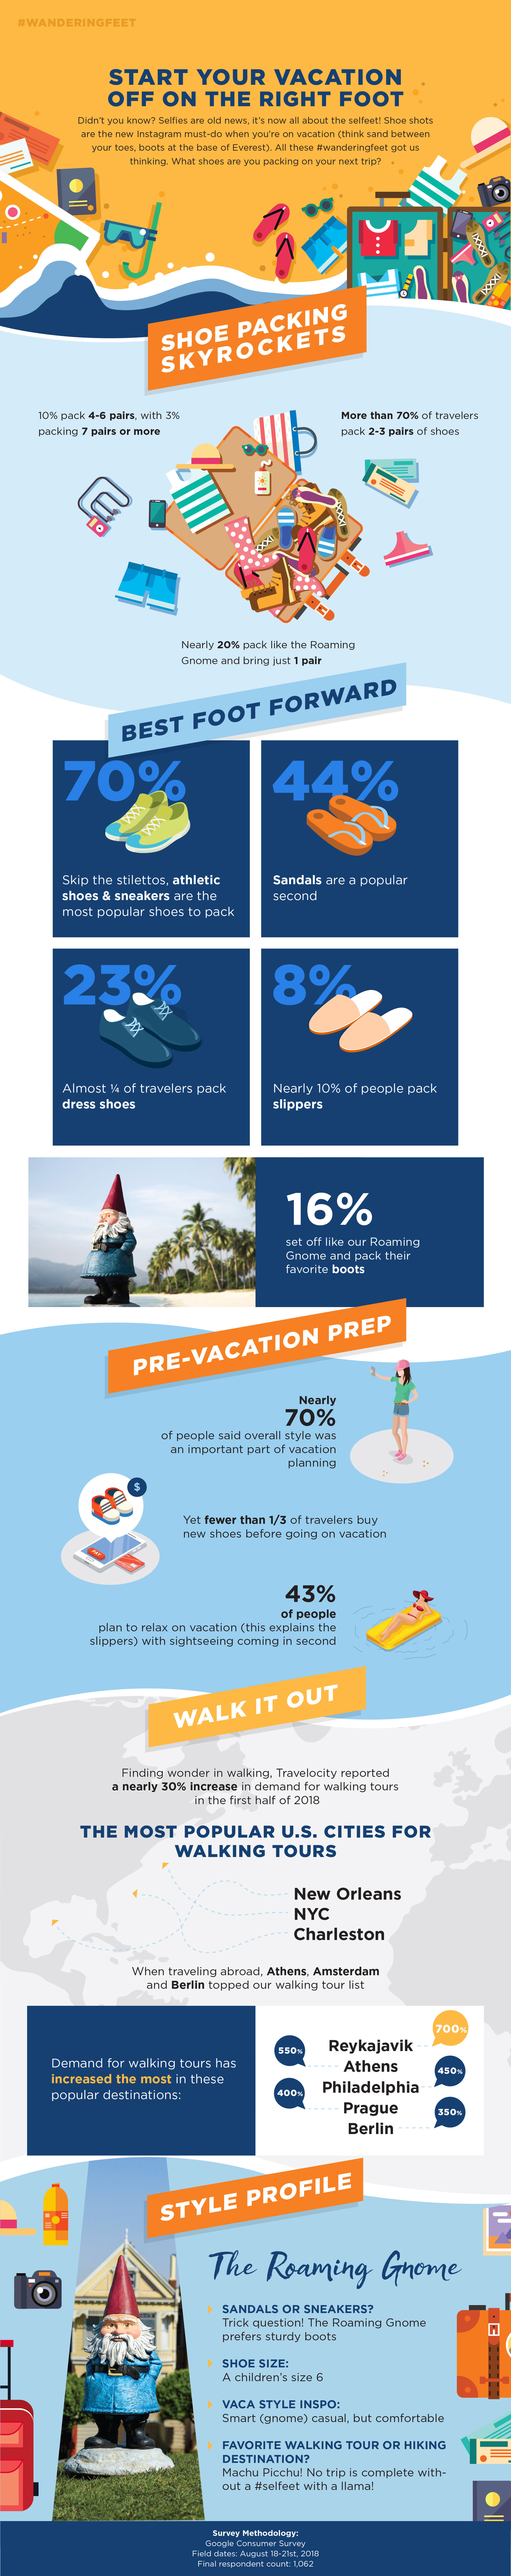 TVLY wandering feet infographic